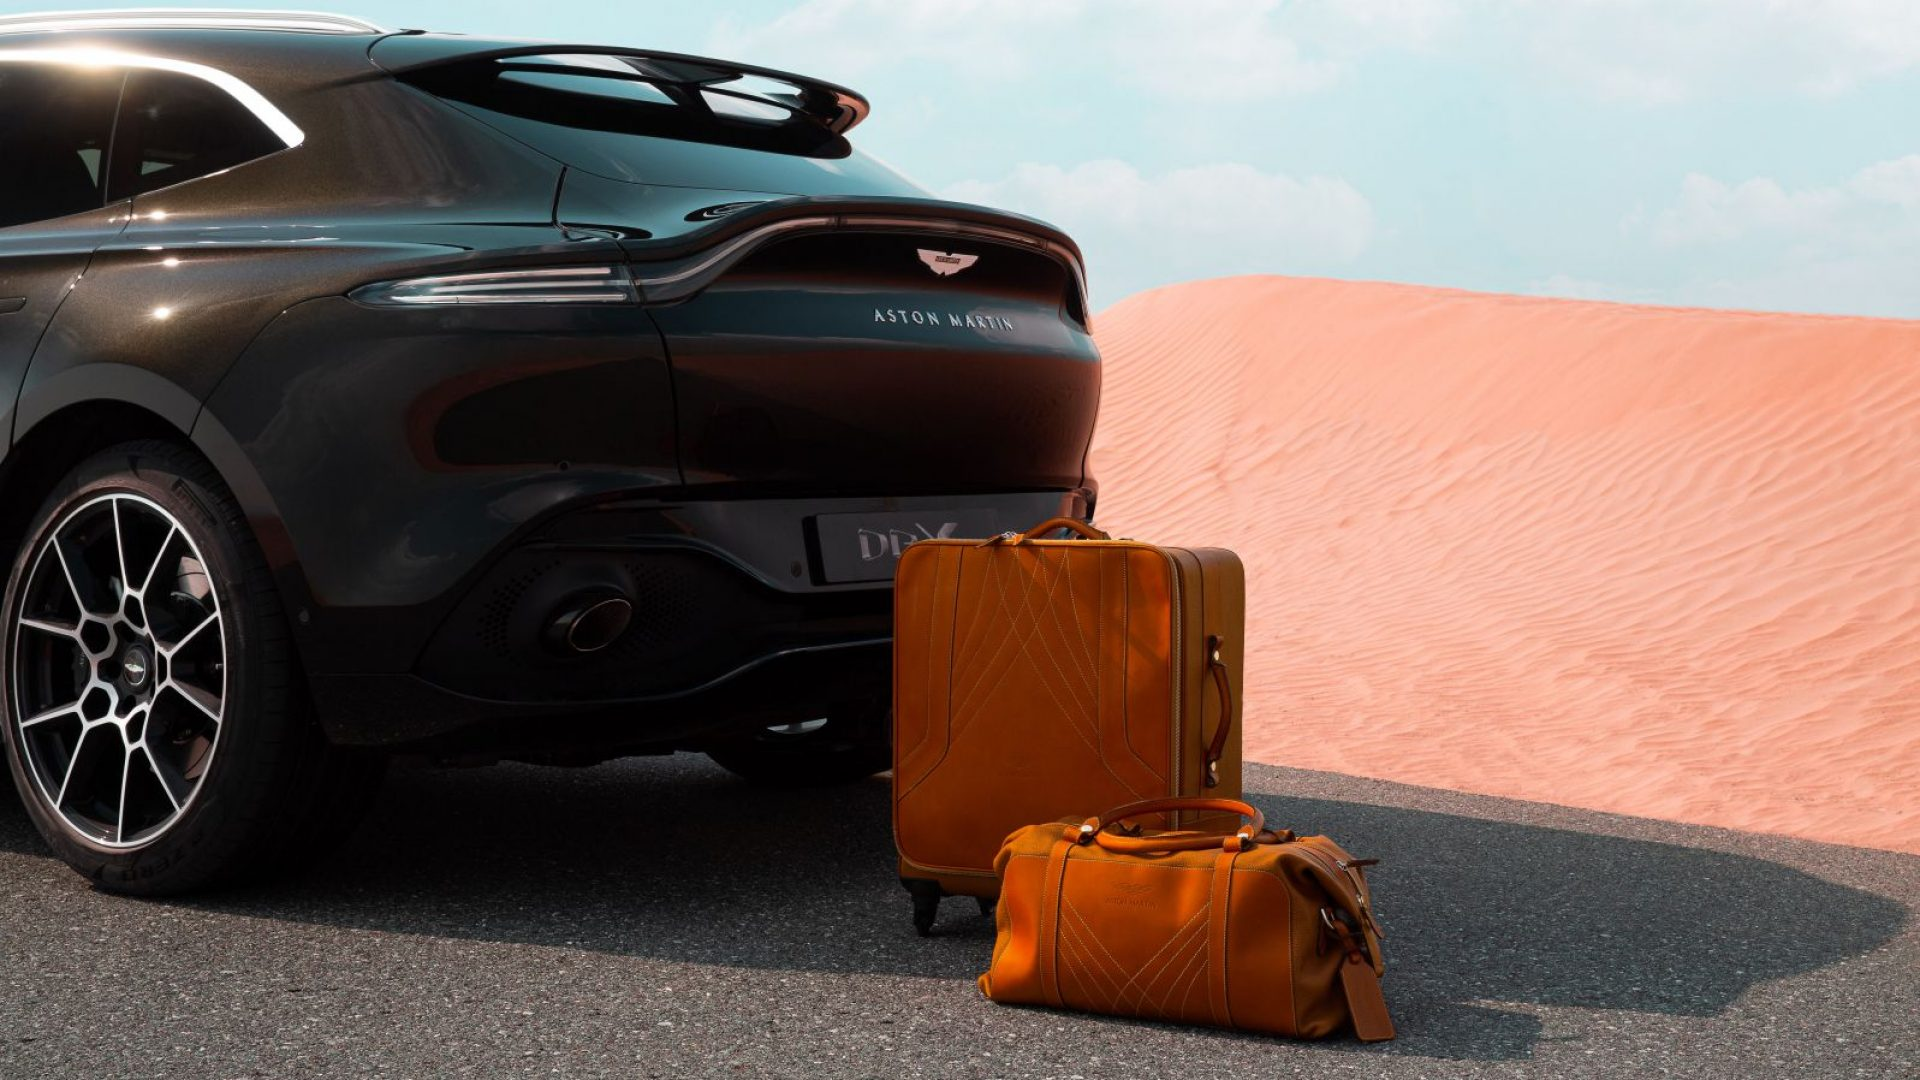 aston-martin-dbx-in-the-middle-east-15-jpg.